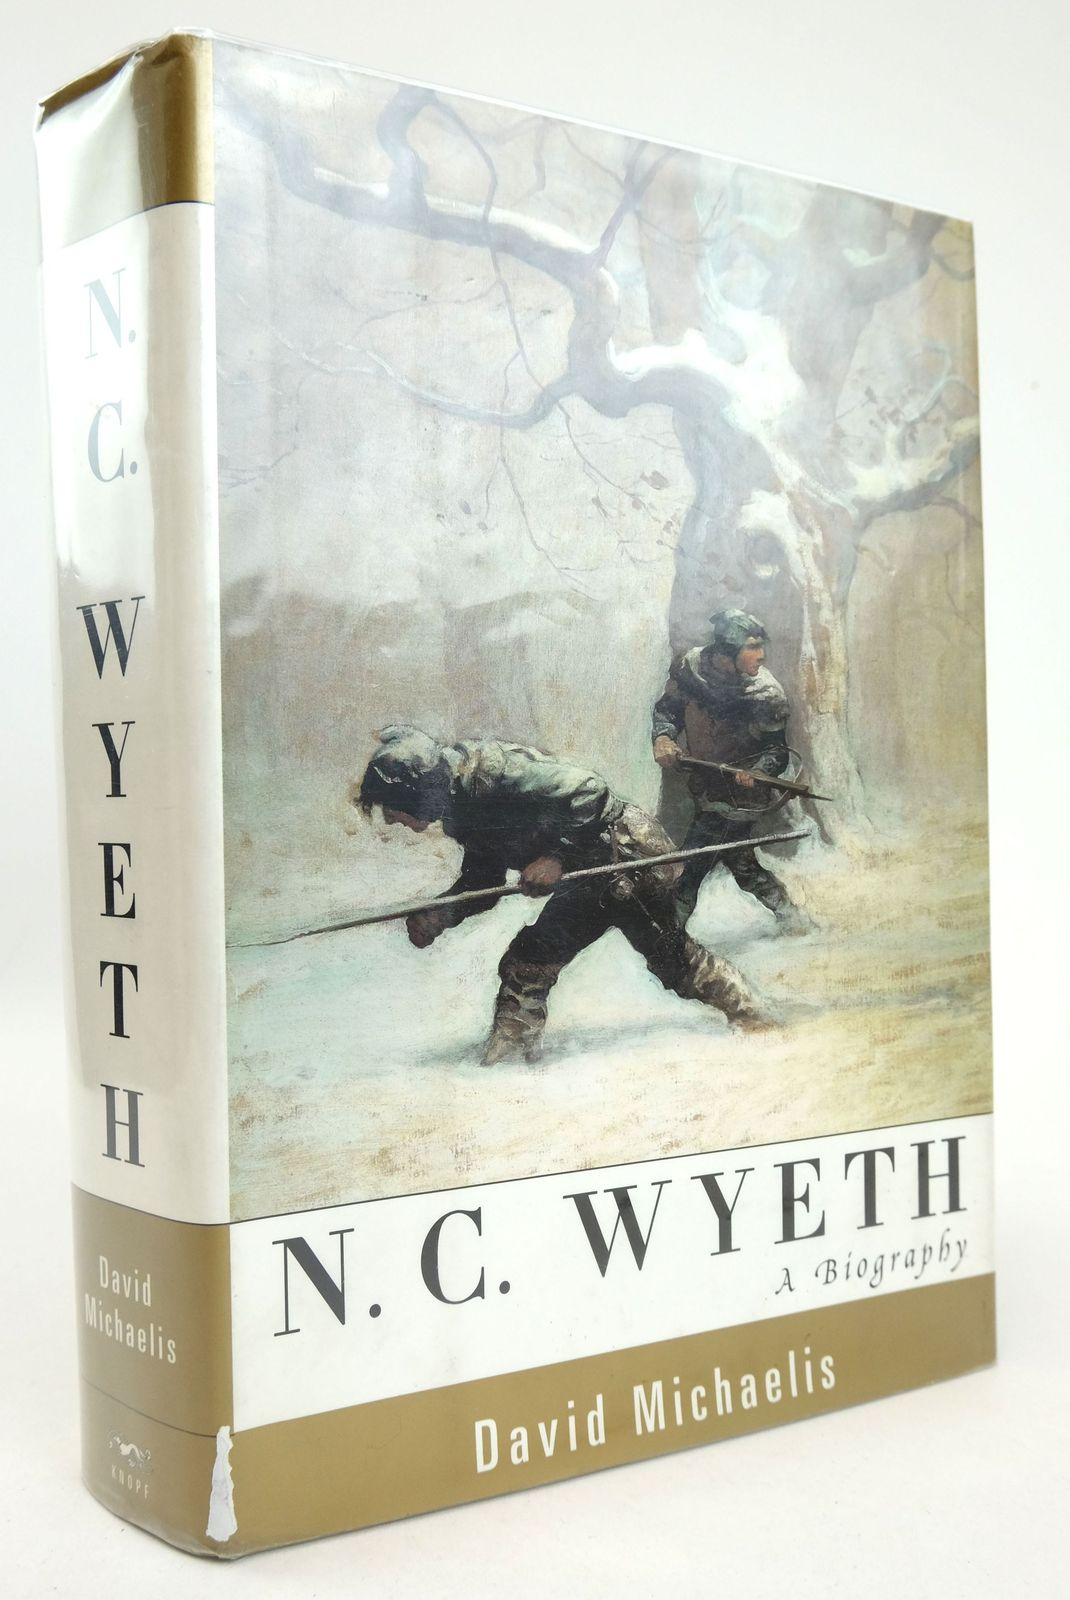 Photo of N.C. WYETH: A BIOGRAPHY written by Michaelis, David illustrated by Wyeth, N.C. published by Alfred A. Knopf (STOCK CODE: 1819269)  for sale by Stella & Rose's Books